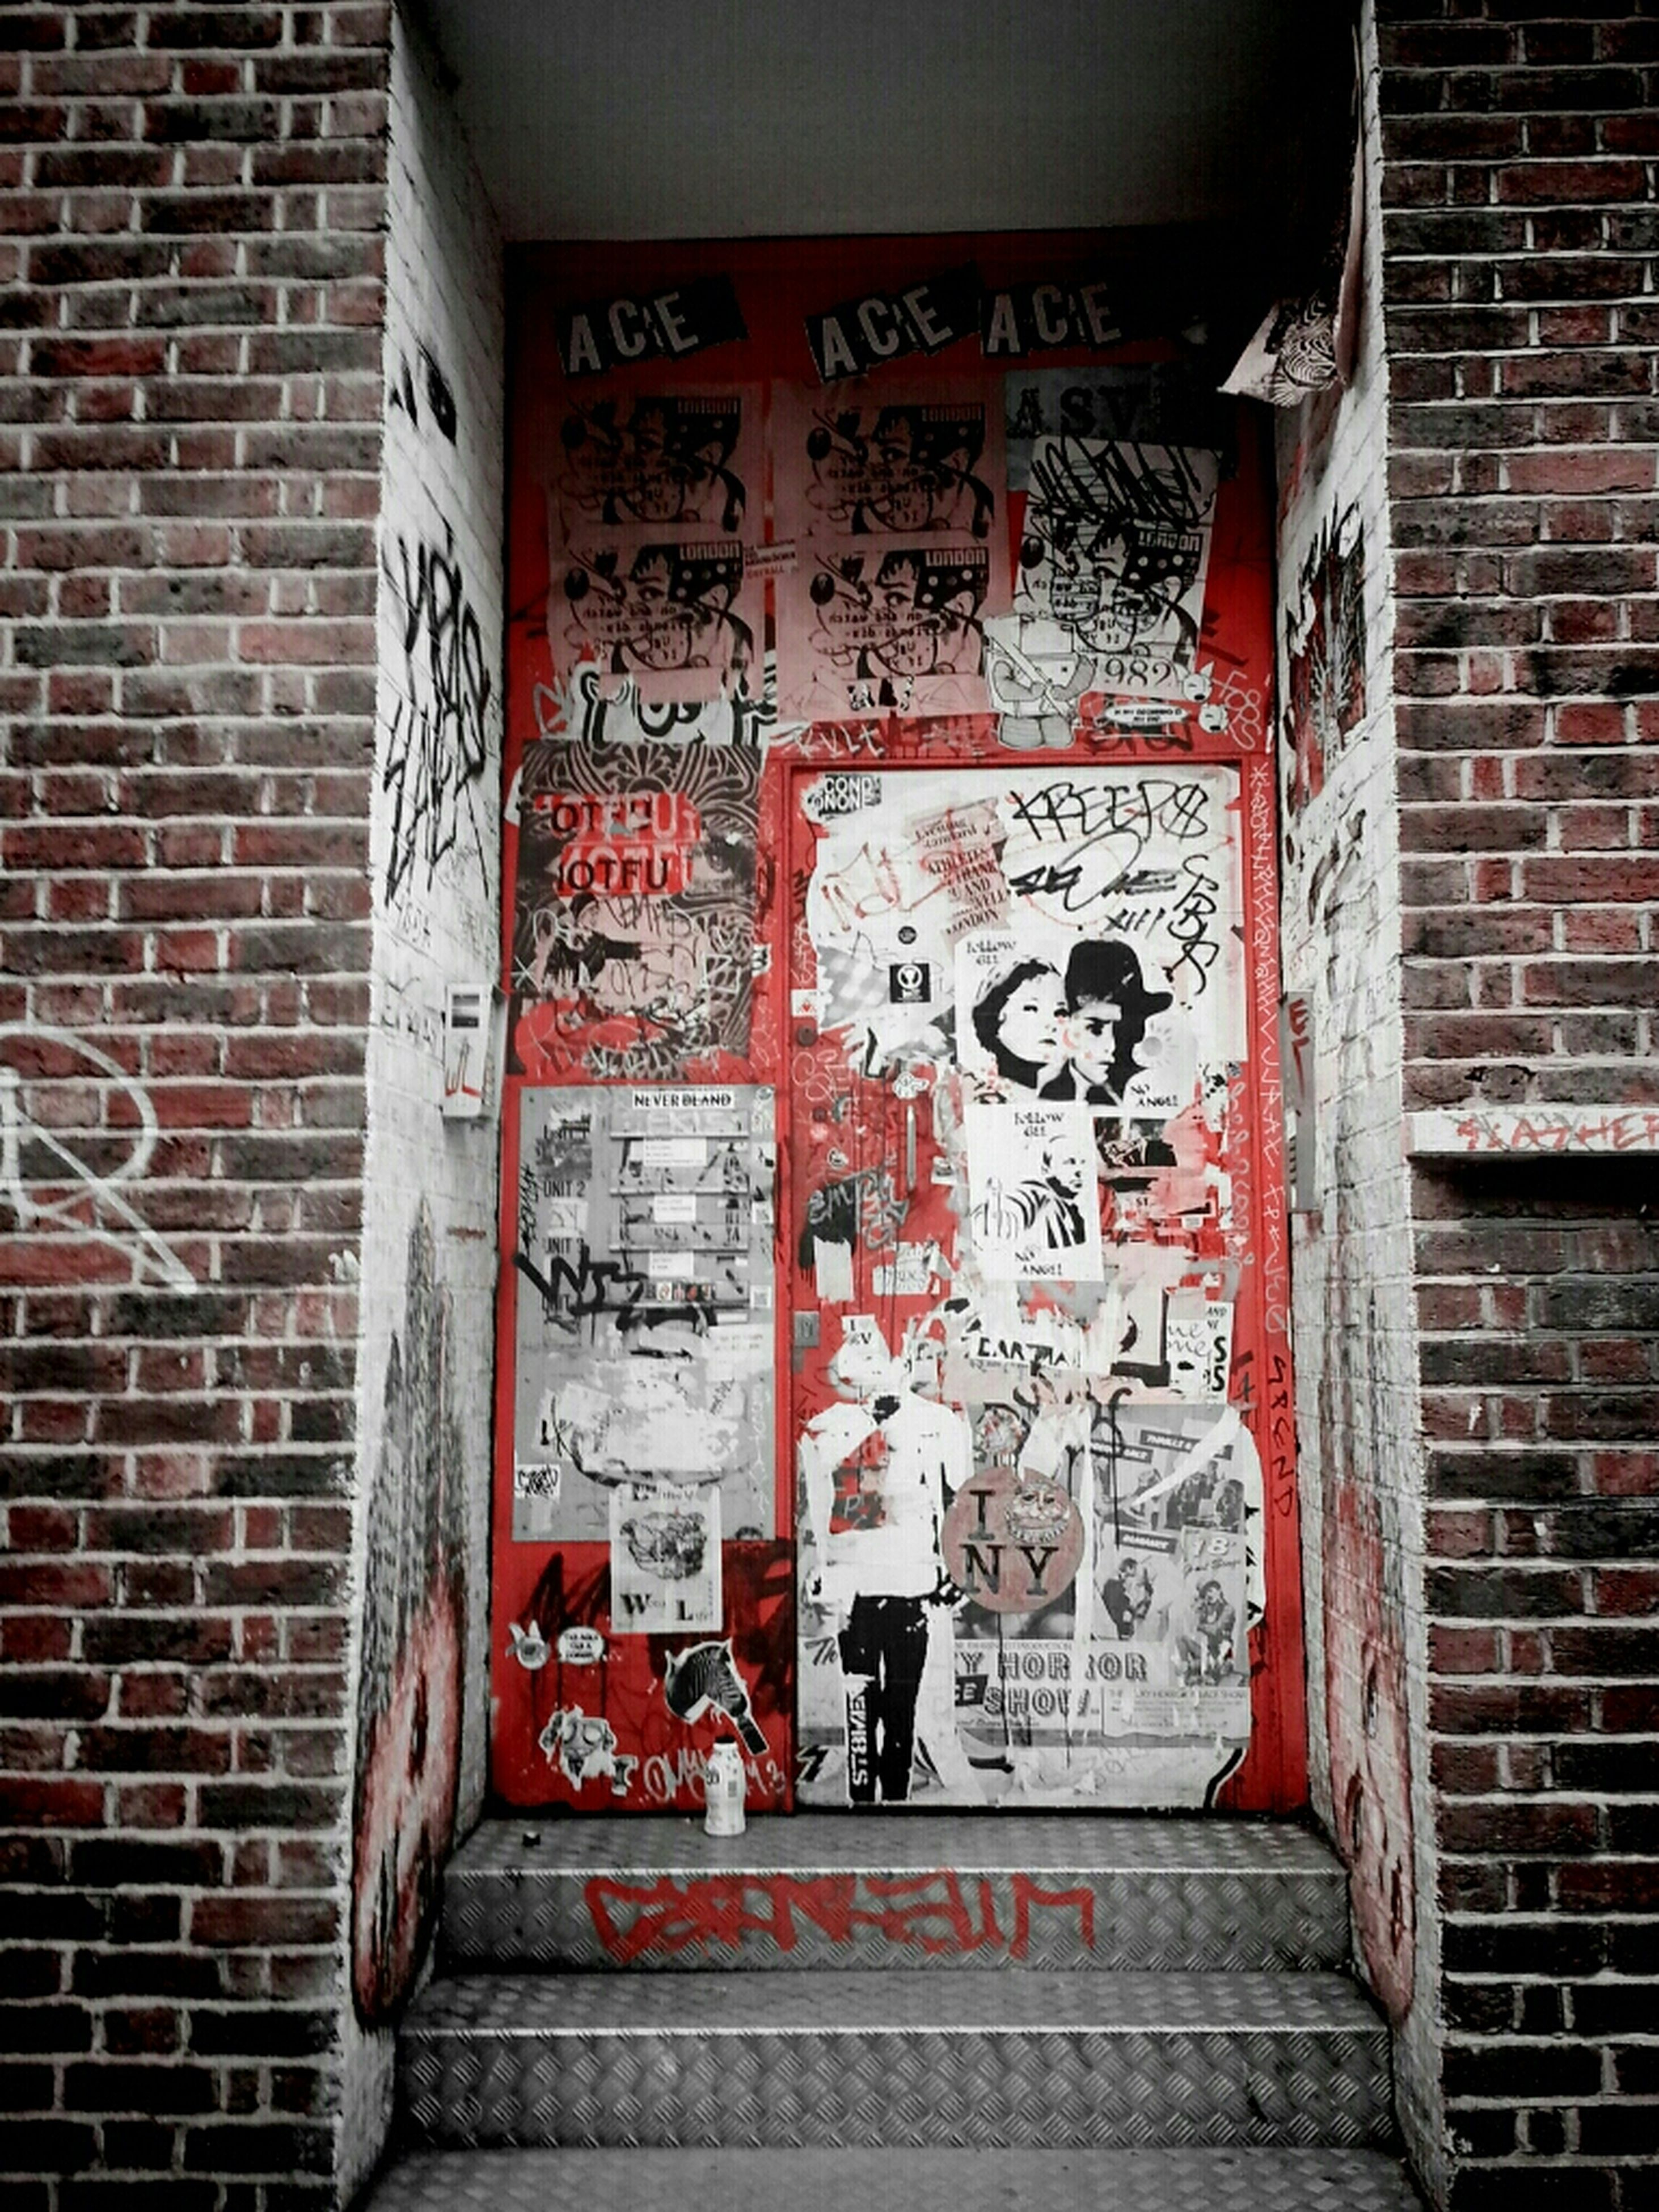 architecture, built structure, brick wall, building exterior, wall - building feature, red, text, door, closed, western script, communication, entrance, wall, steps, old, day, house, brick, weathered, window